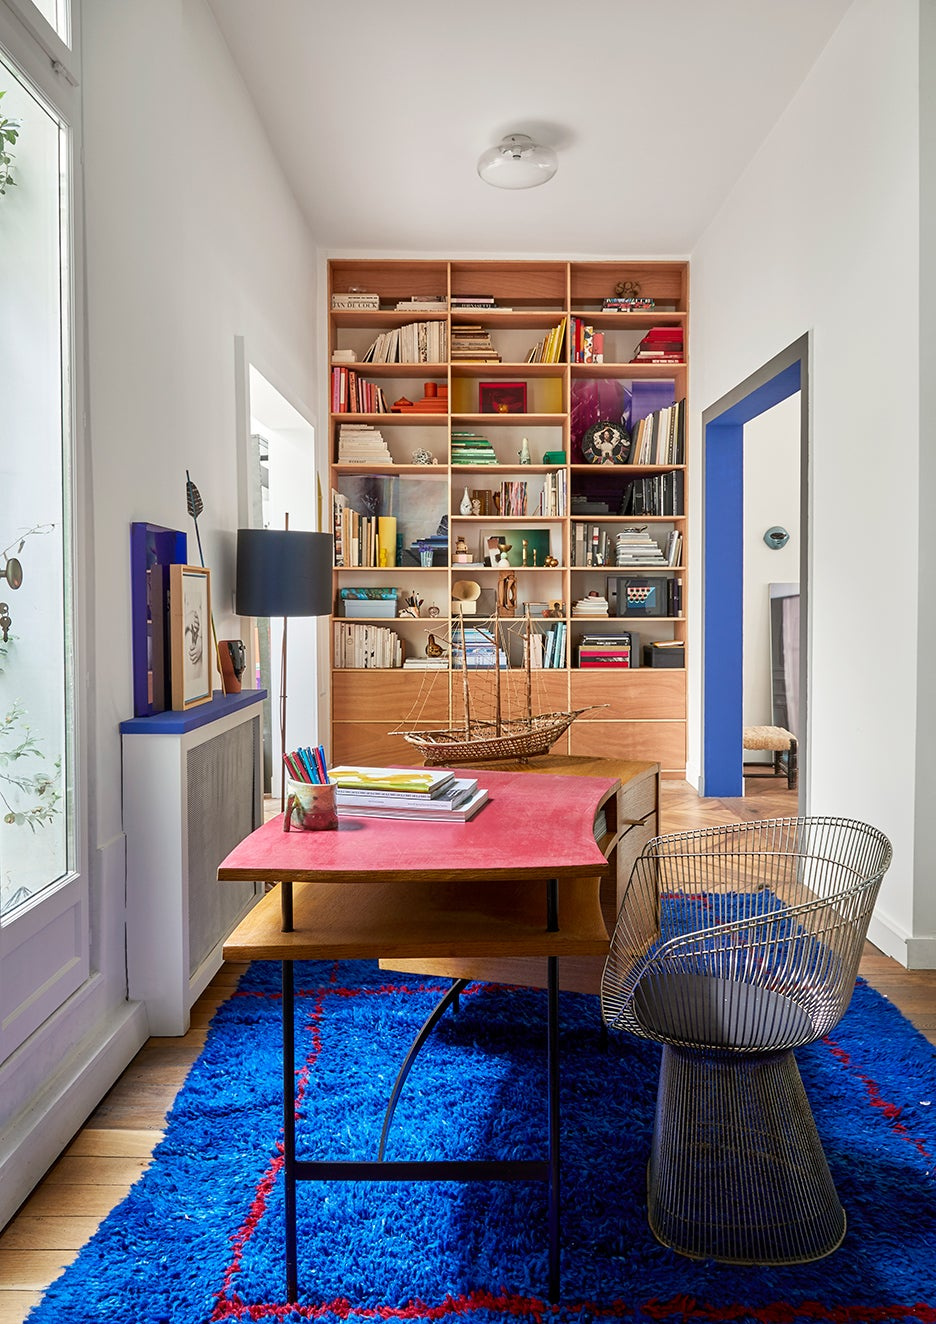 Blue rug in home office